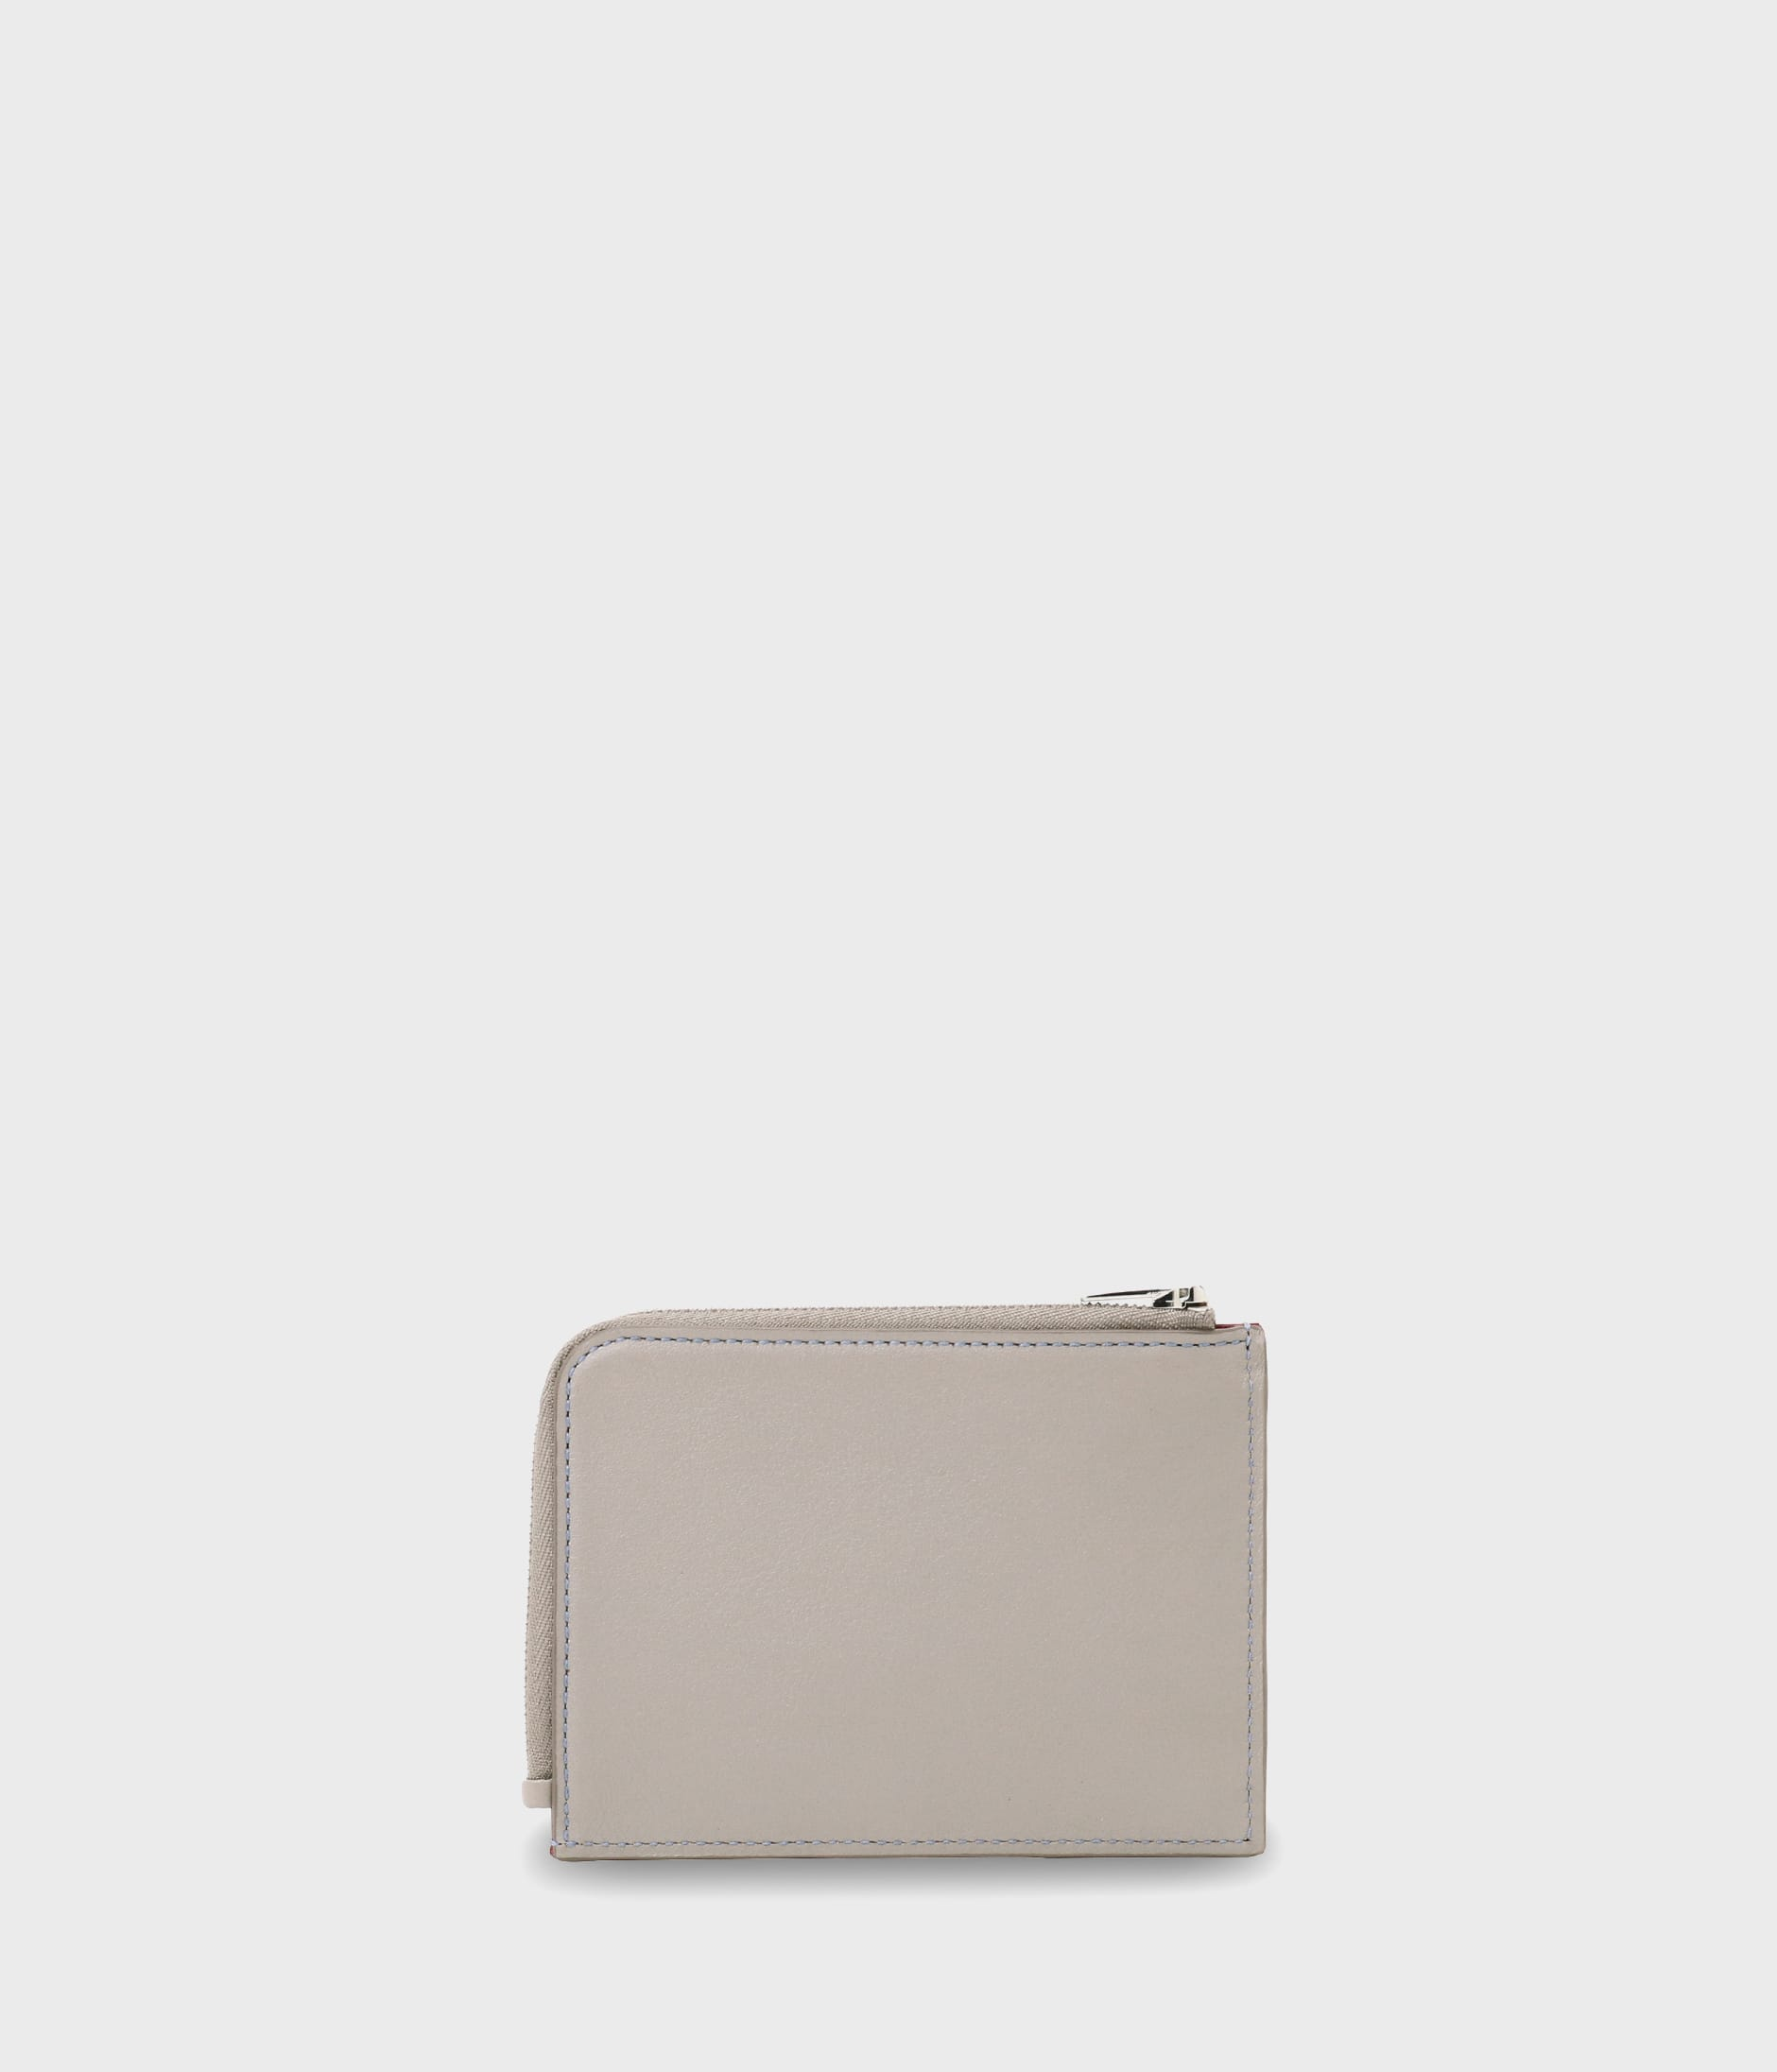 SMALL SOFT PURSE 詳細画像 PALE GREY 2